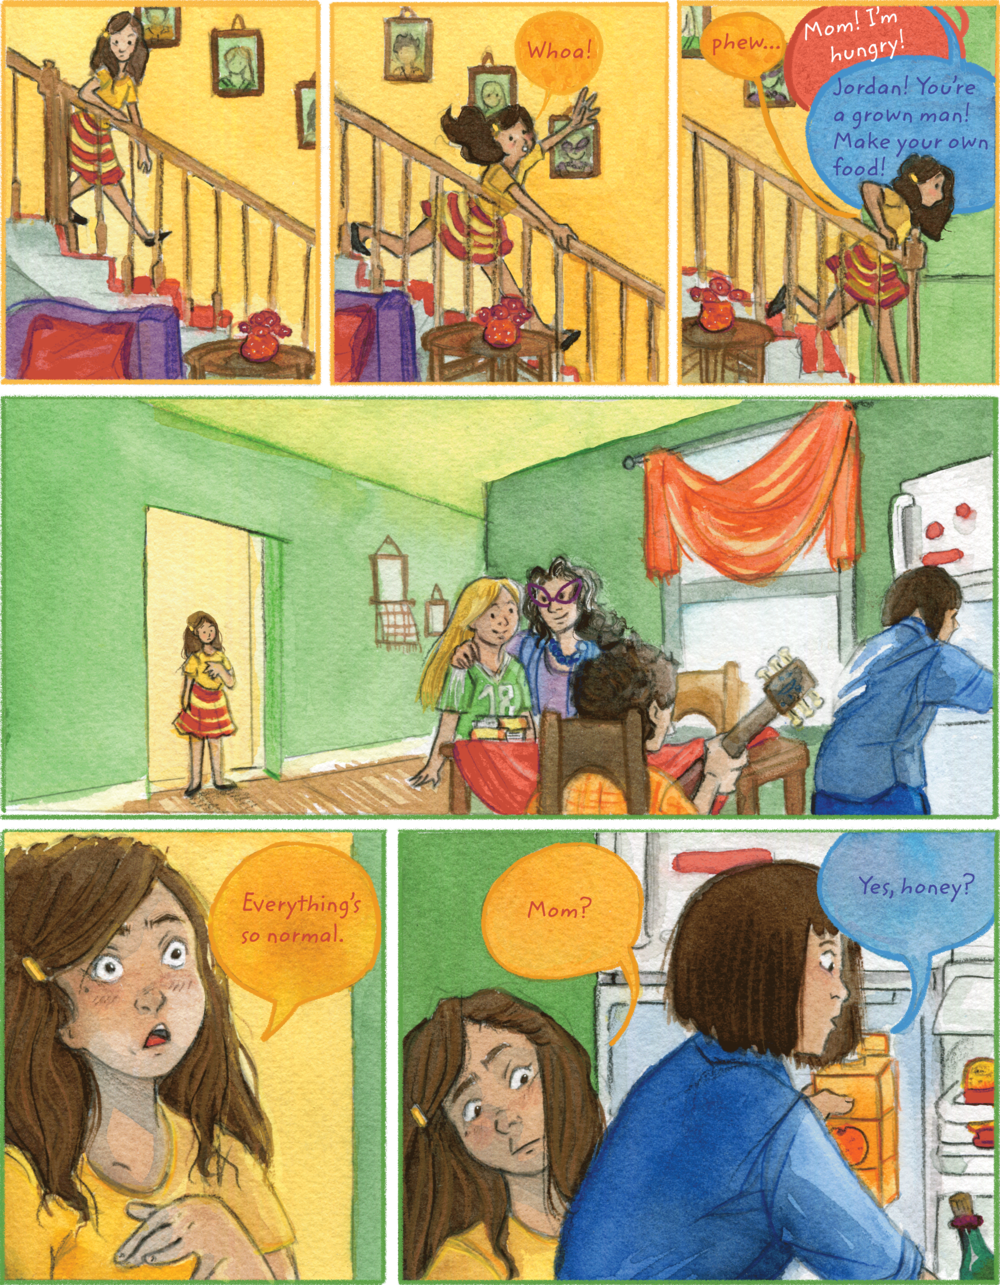 Madeline-Zuluaga-when the rules aren't right ex pg.5.png